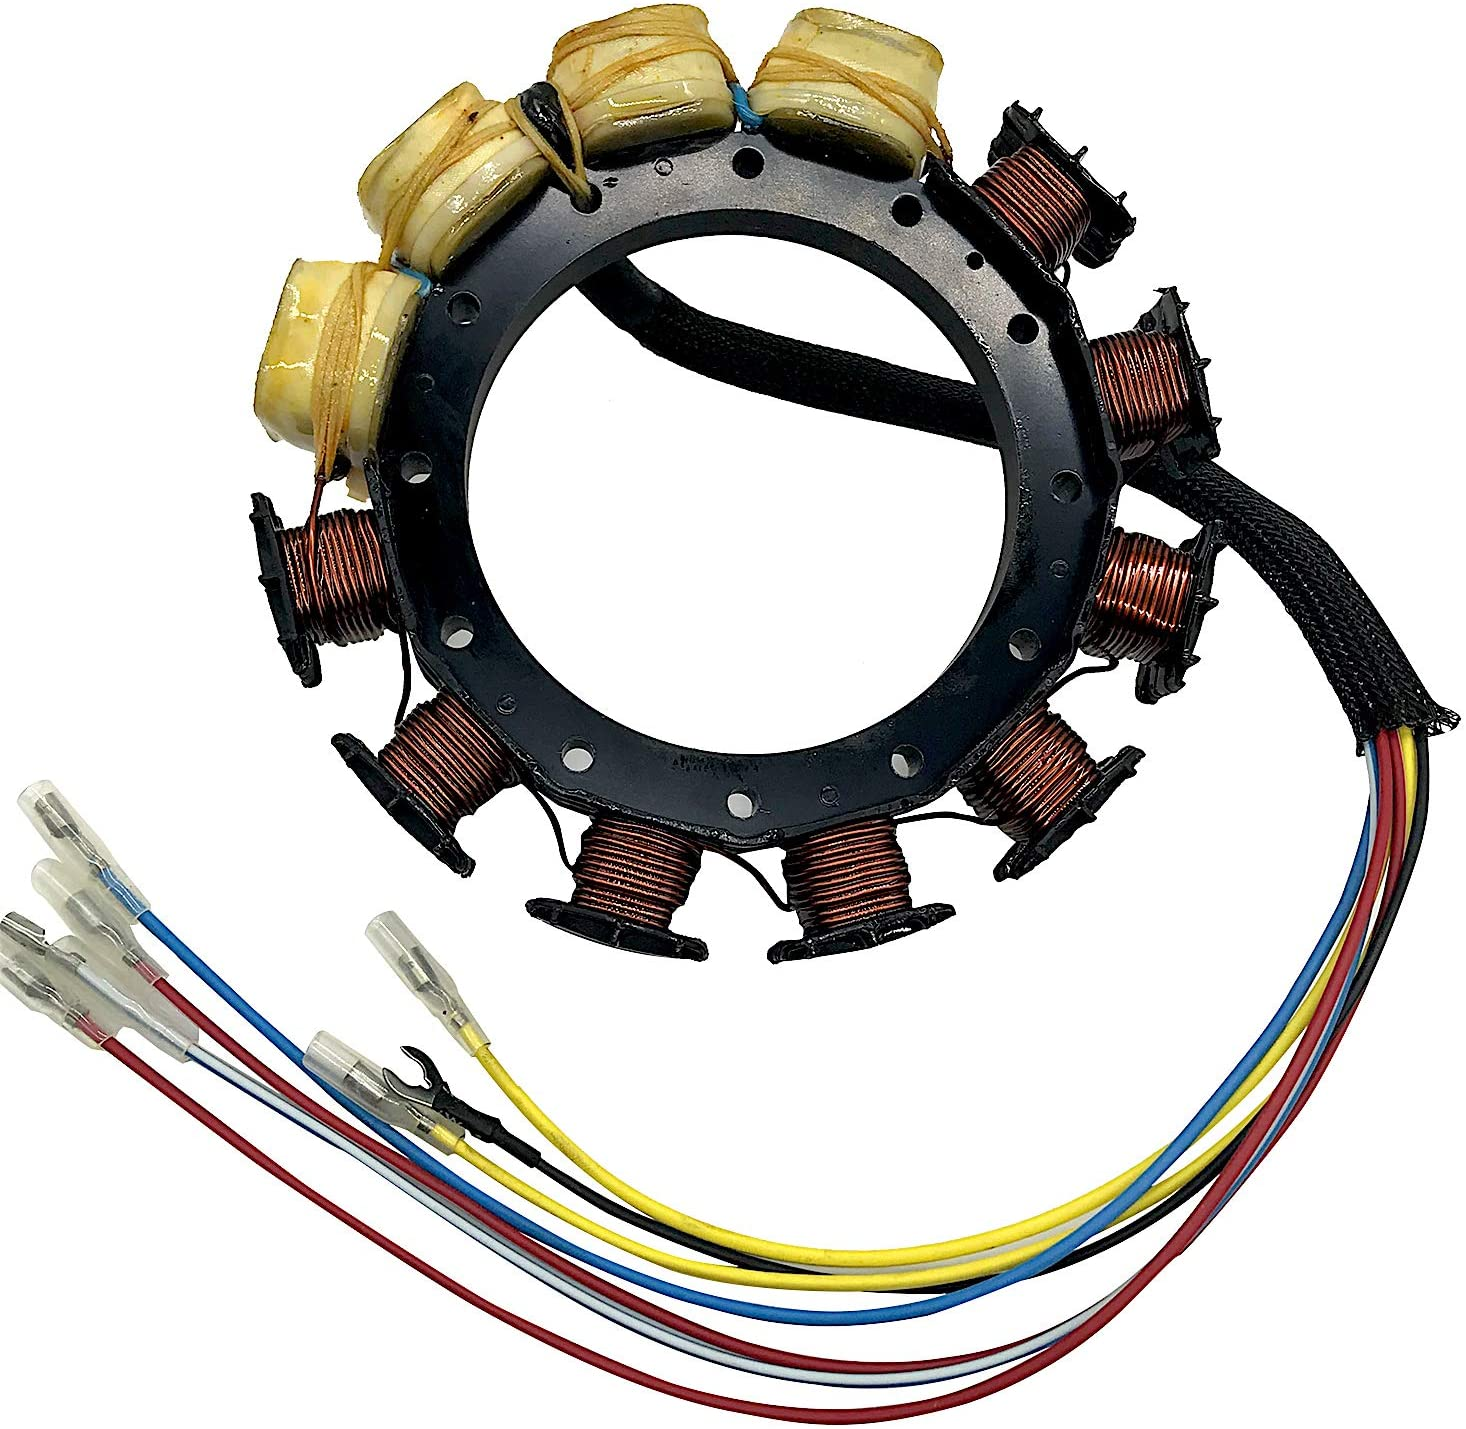 JETUNIT Outboard Stator For 398-9873A36 398-9873A39 398-9873A1 398-9873A3 398-9873A4 174-9873-16 Mercury 210HP 175HP SportJet 16AMP 6 Cyl